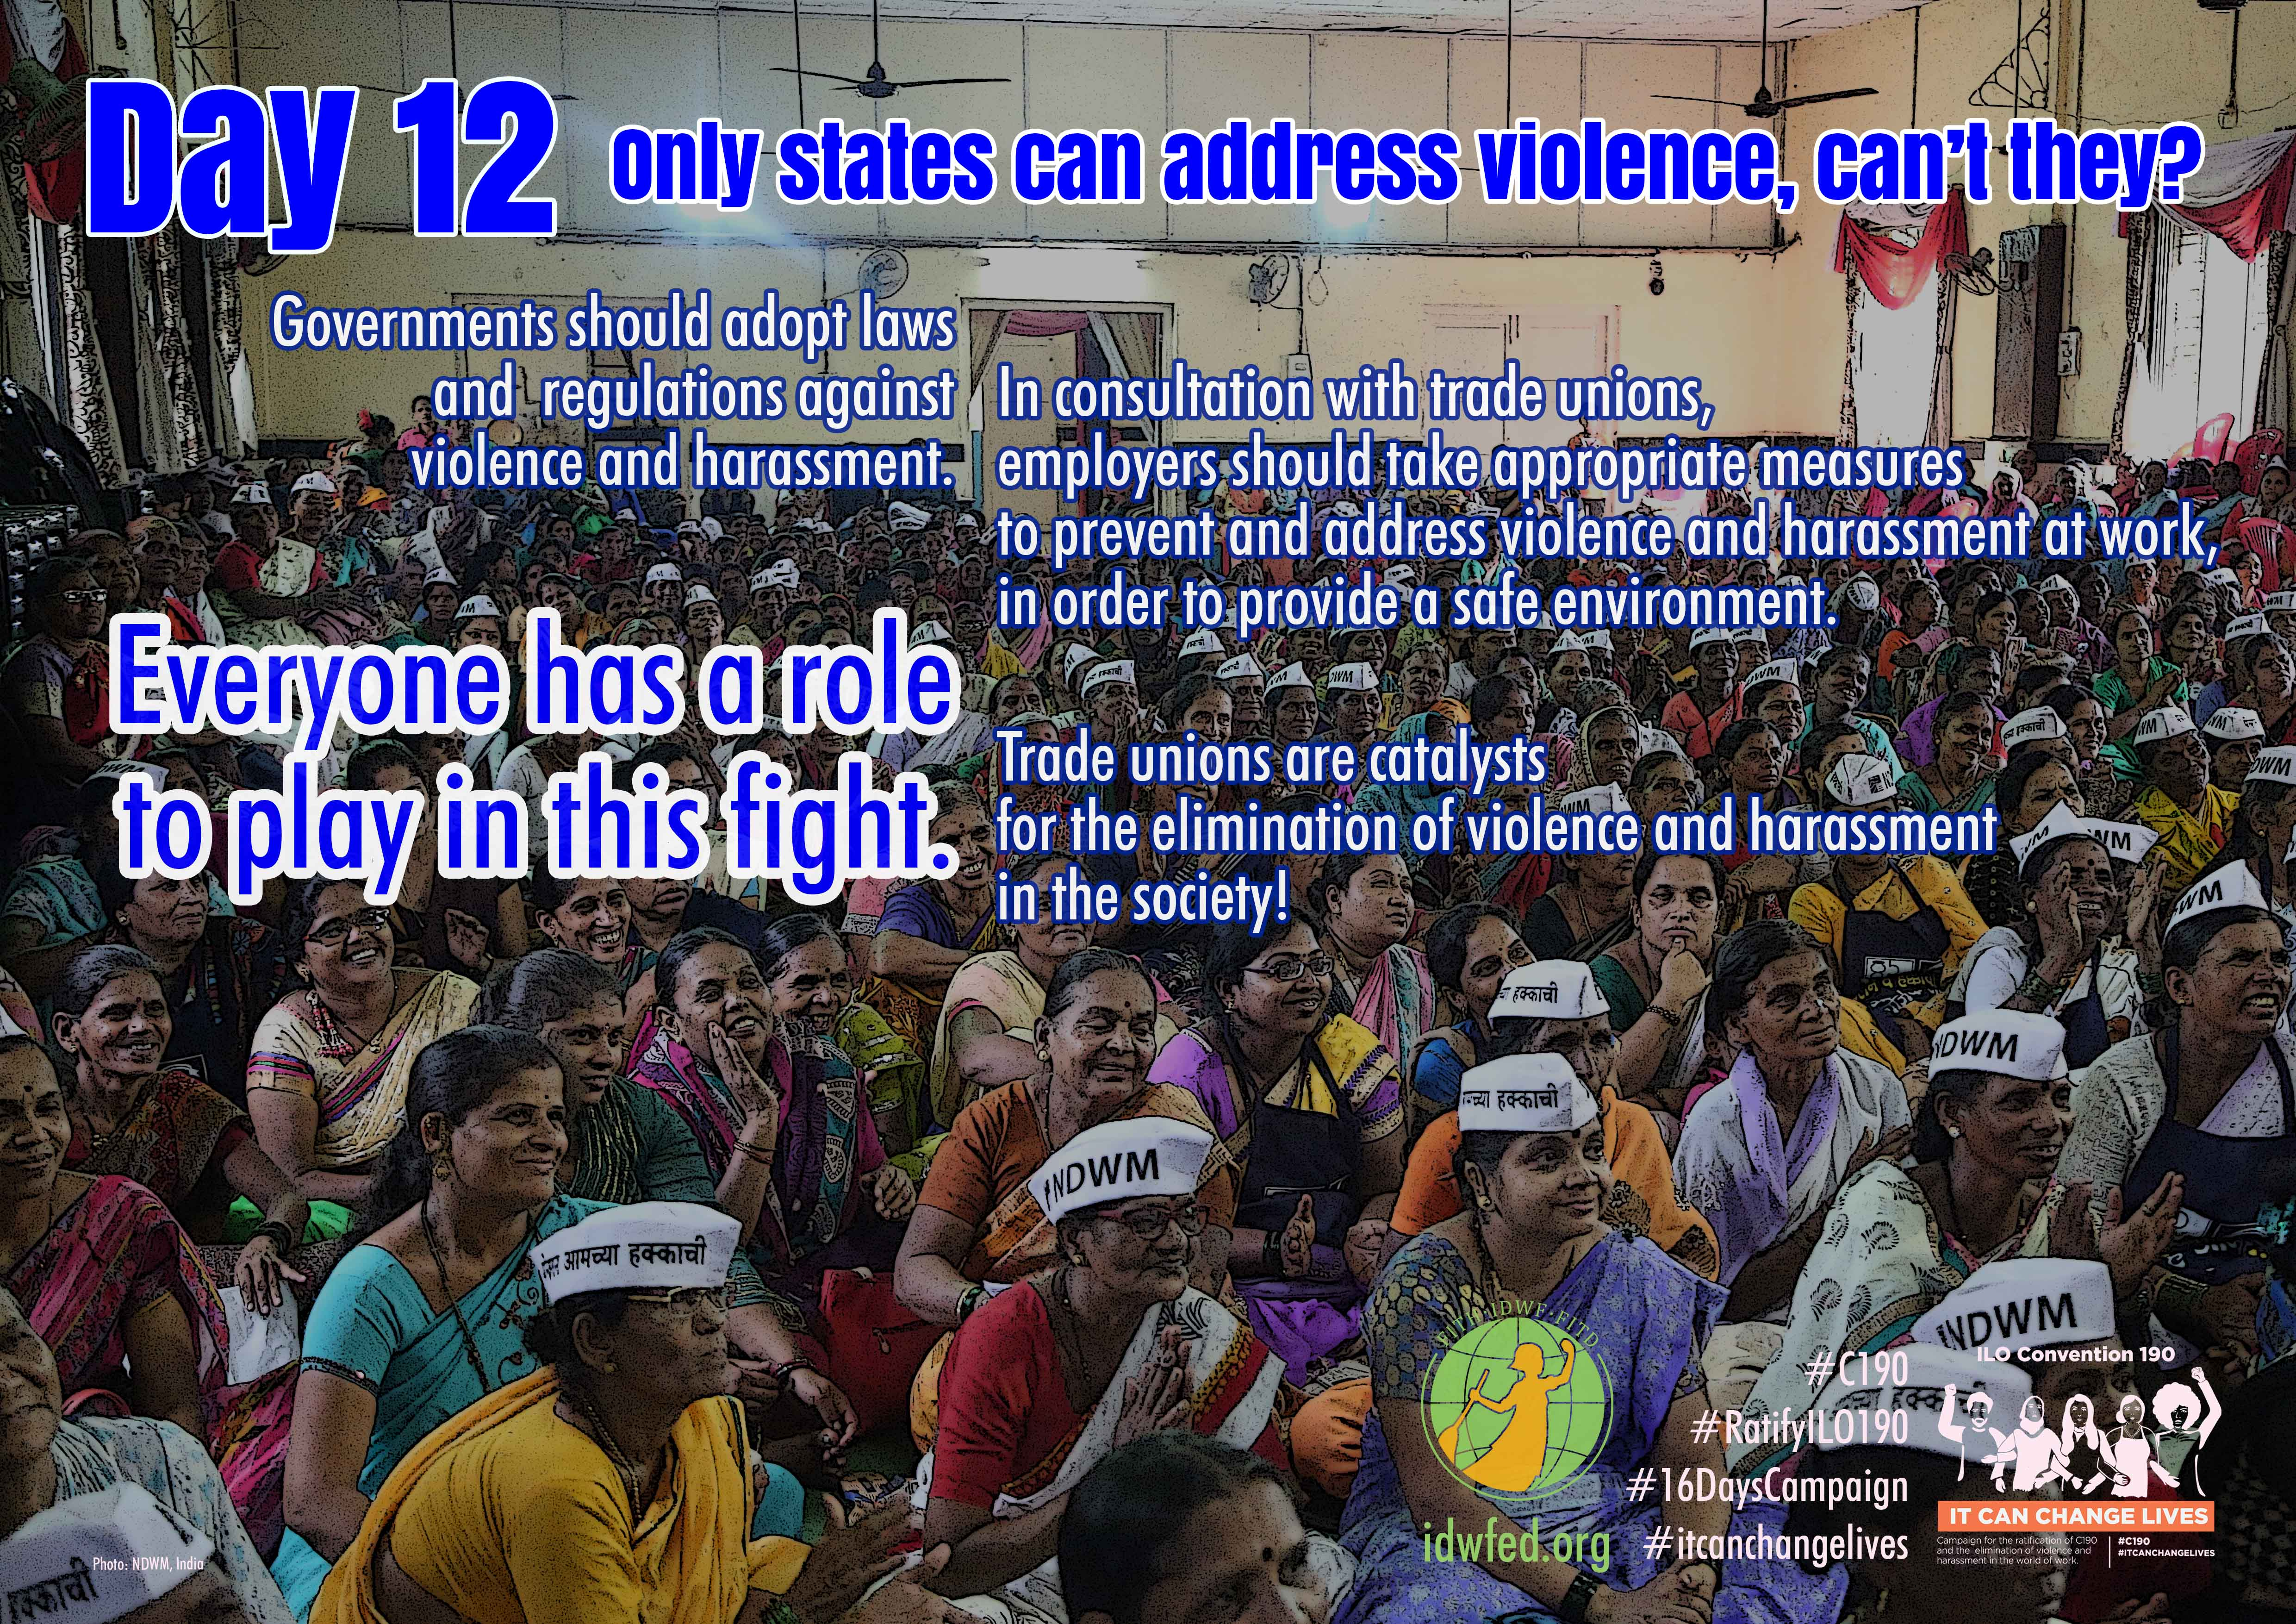 12. Only states can address violence, can't they?